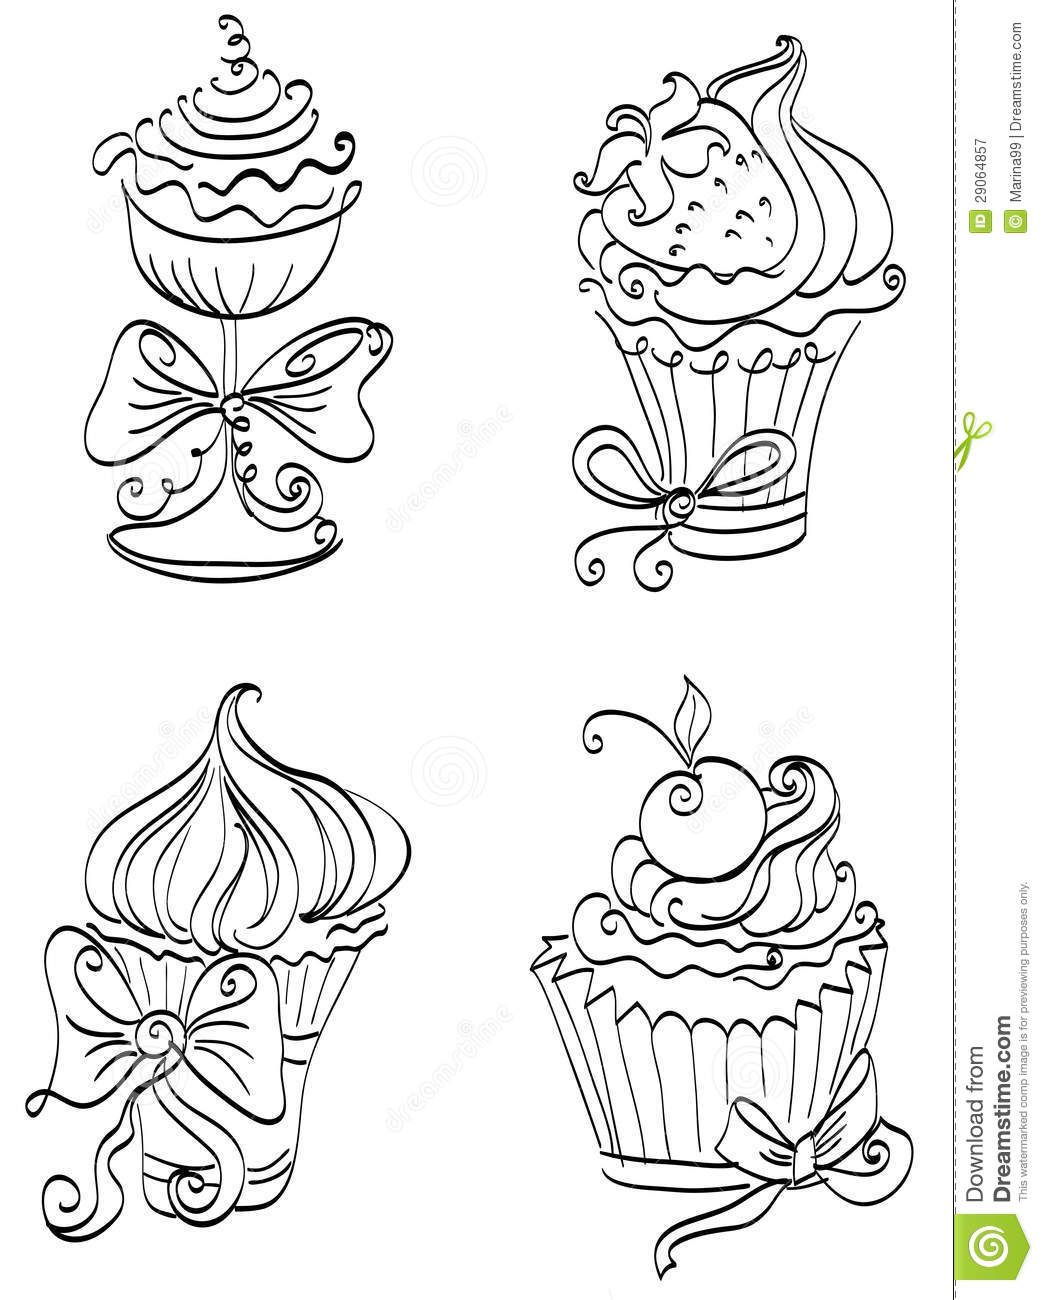 yummy coloring pages - nata nat yummy pinterest